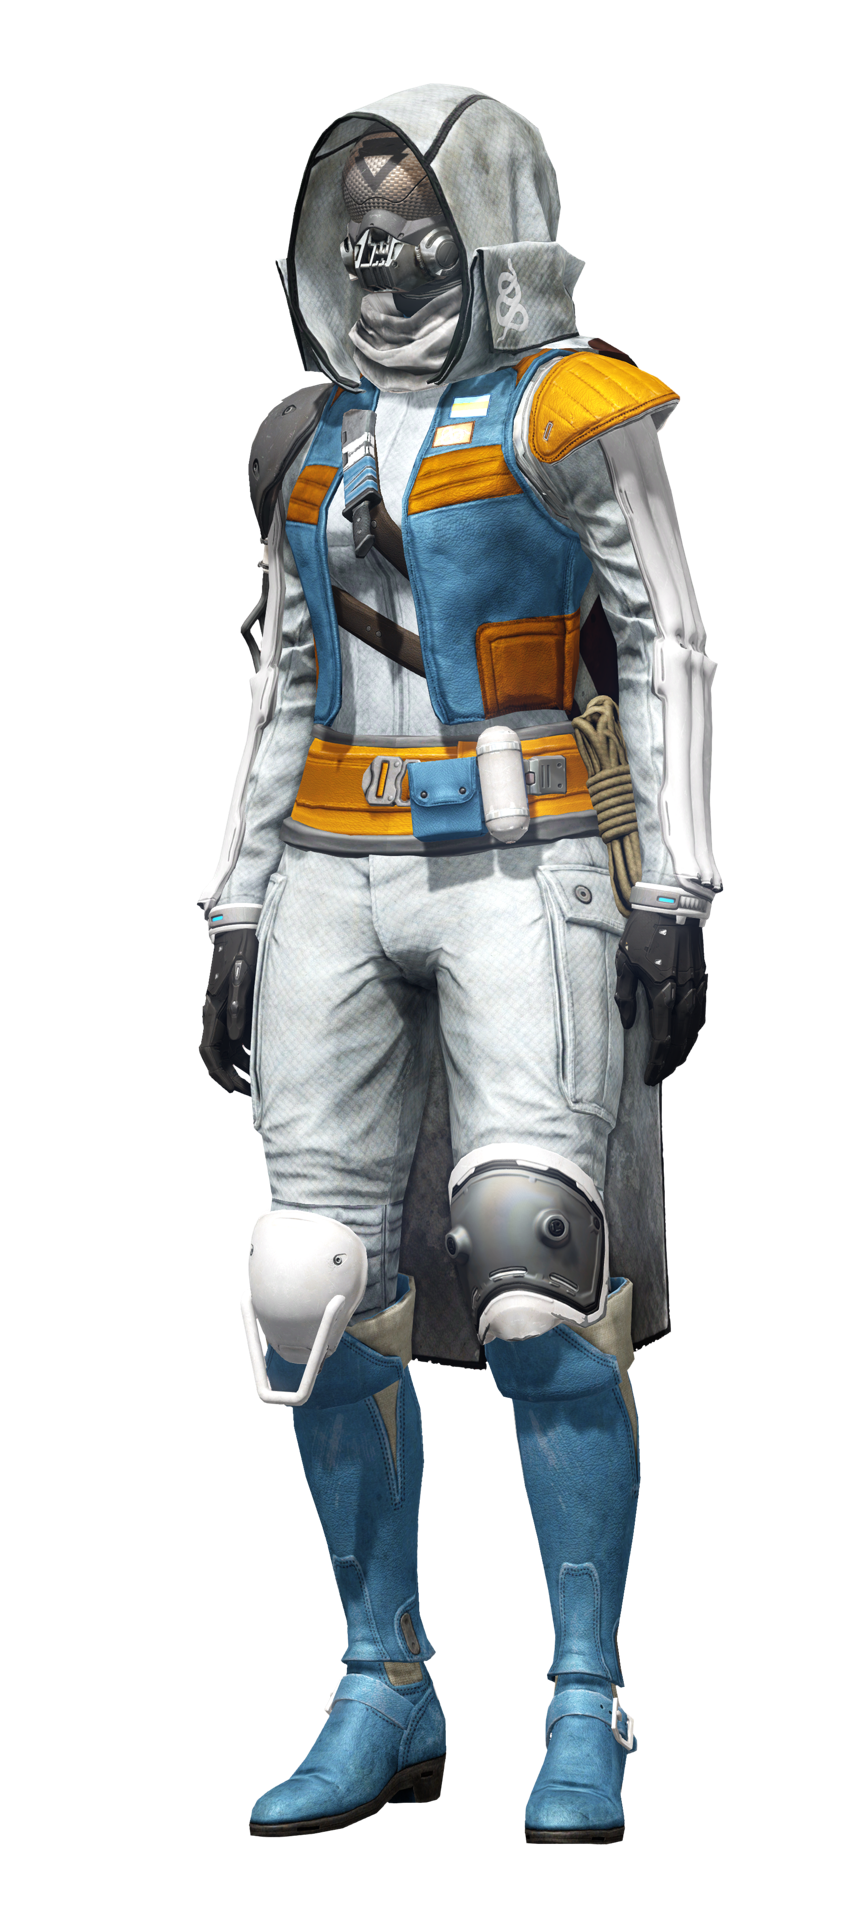 destiny_hunter_long_tomorrow_9g (2)